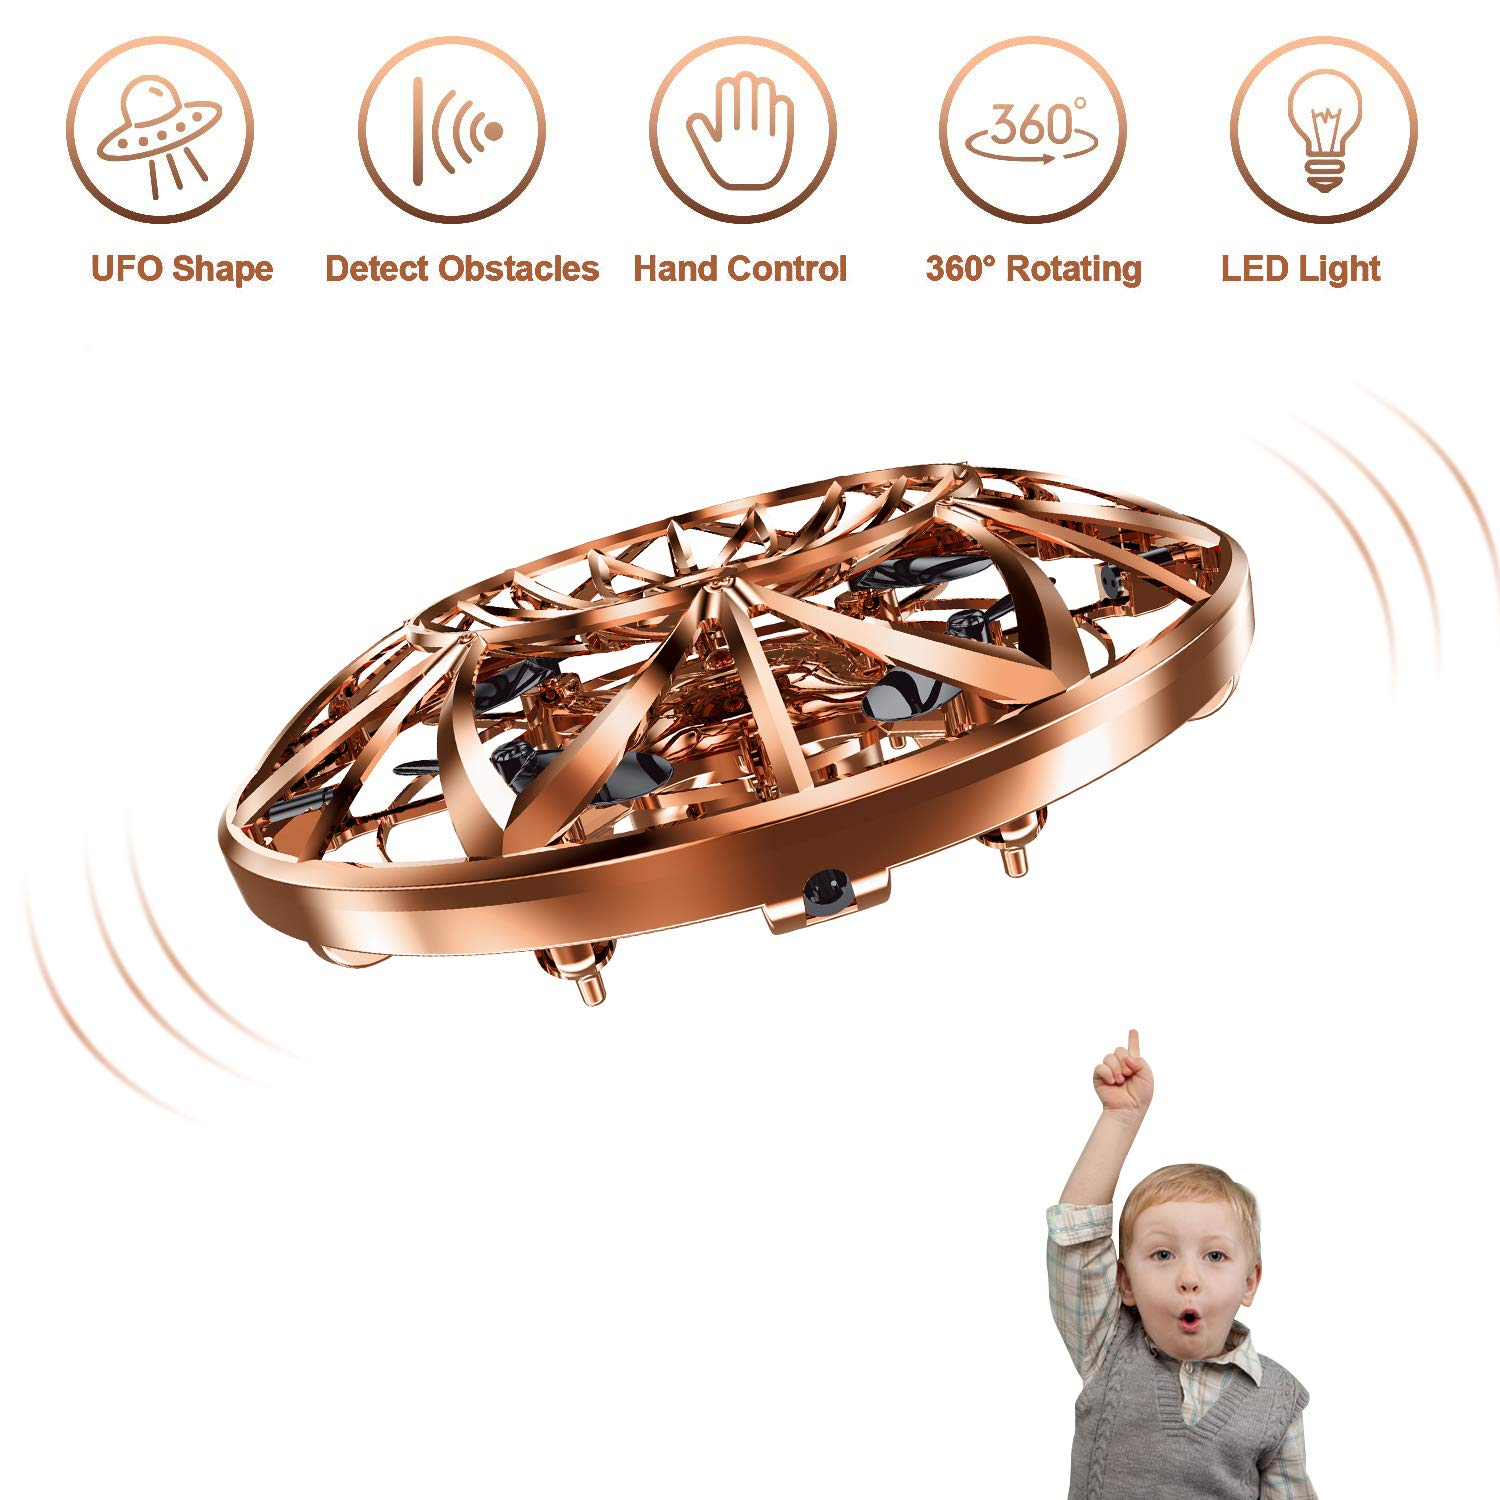 Hand Operated Drones for Kids,Hands Free Mini Drone Flying Ball Toys for Kids,Gift for Boy or Girl(Gold) by Tagitary